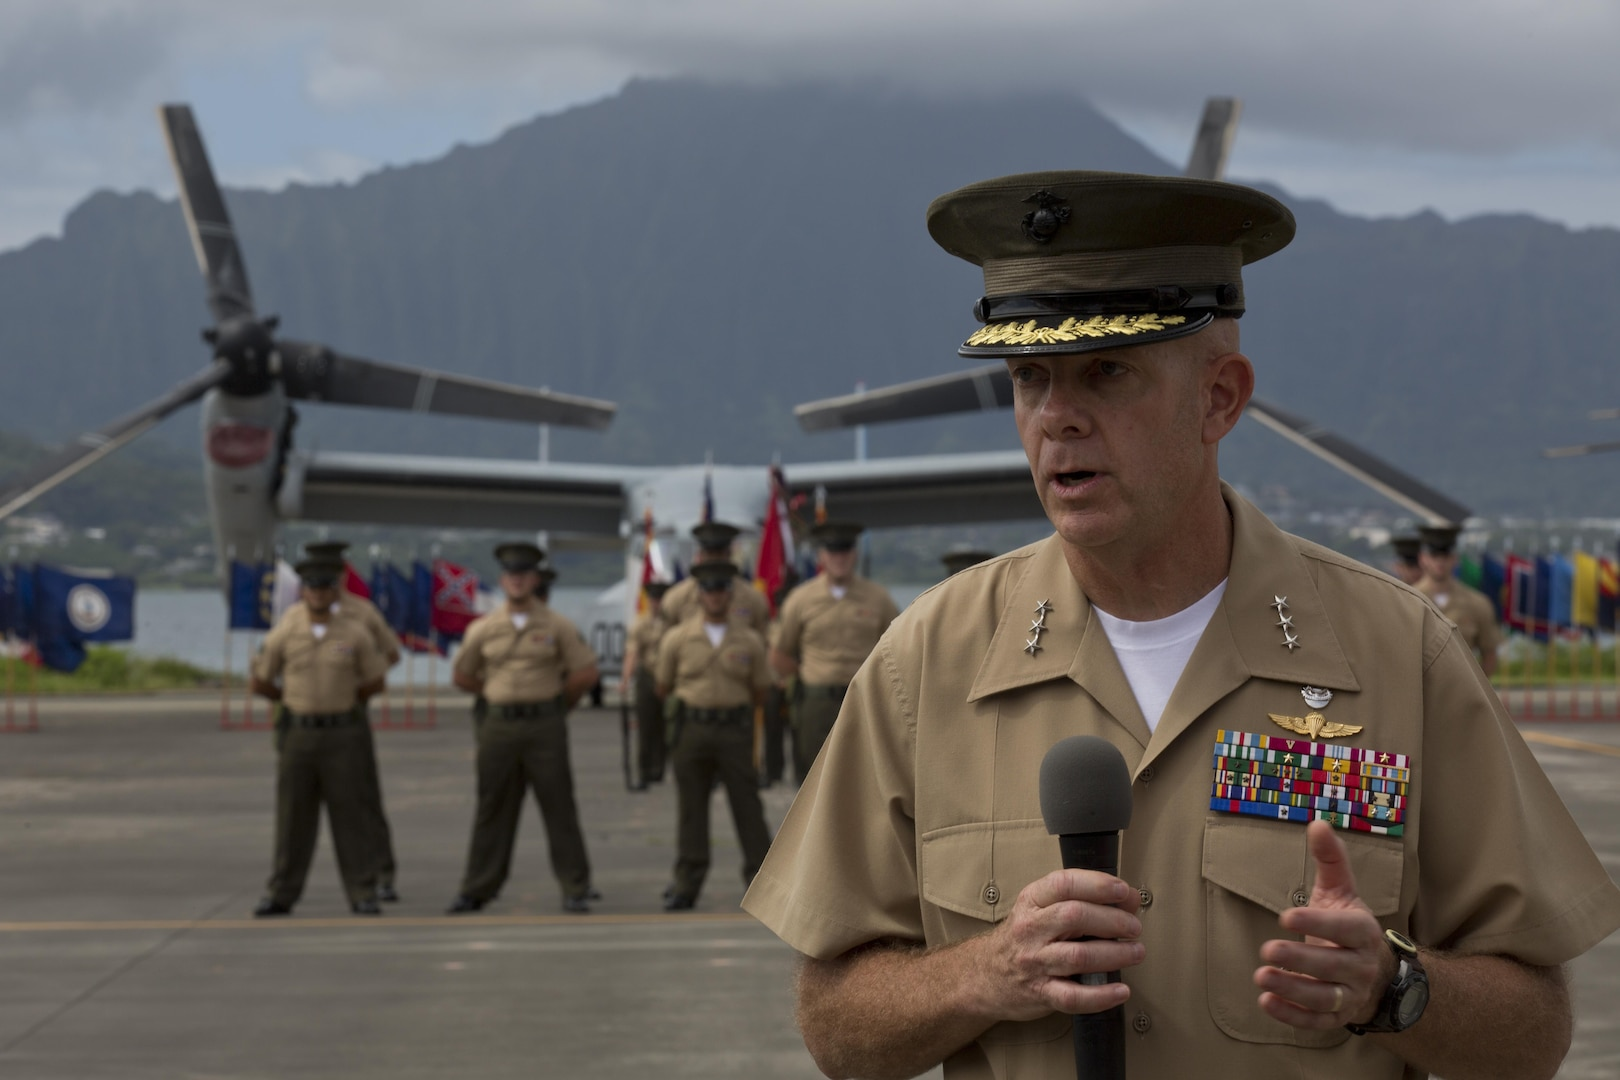 Lt. Gen. David H. Berger, commander, U.S. Marine Corps Forces, Pacific, speaks during a change of command ceremony at Marine Corps Base Hawaii, Aug. 26, 2016. During the ceremony, Lt. Gen. John A. Toolan relinquished command to Berger. (U.S. Marine Corps photo by Lance Cpl. Matthew Casbarro/Released)